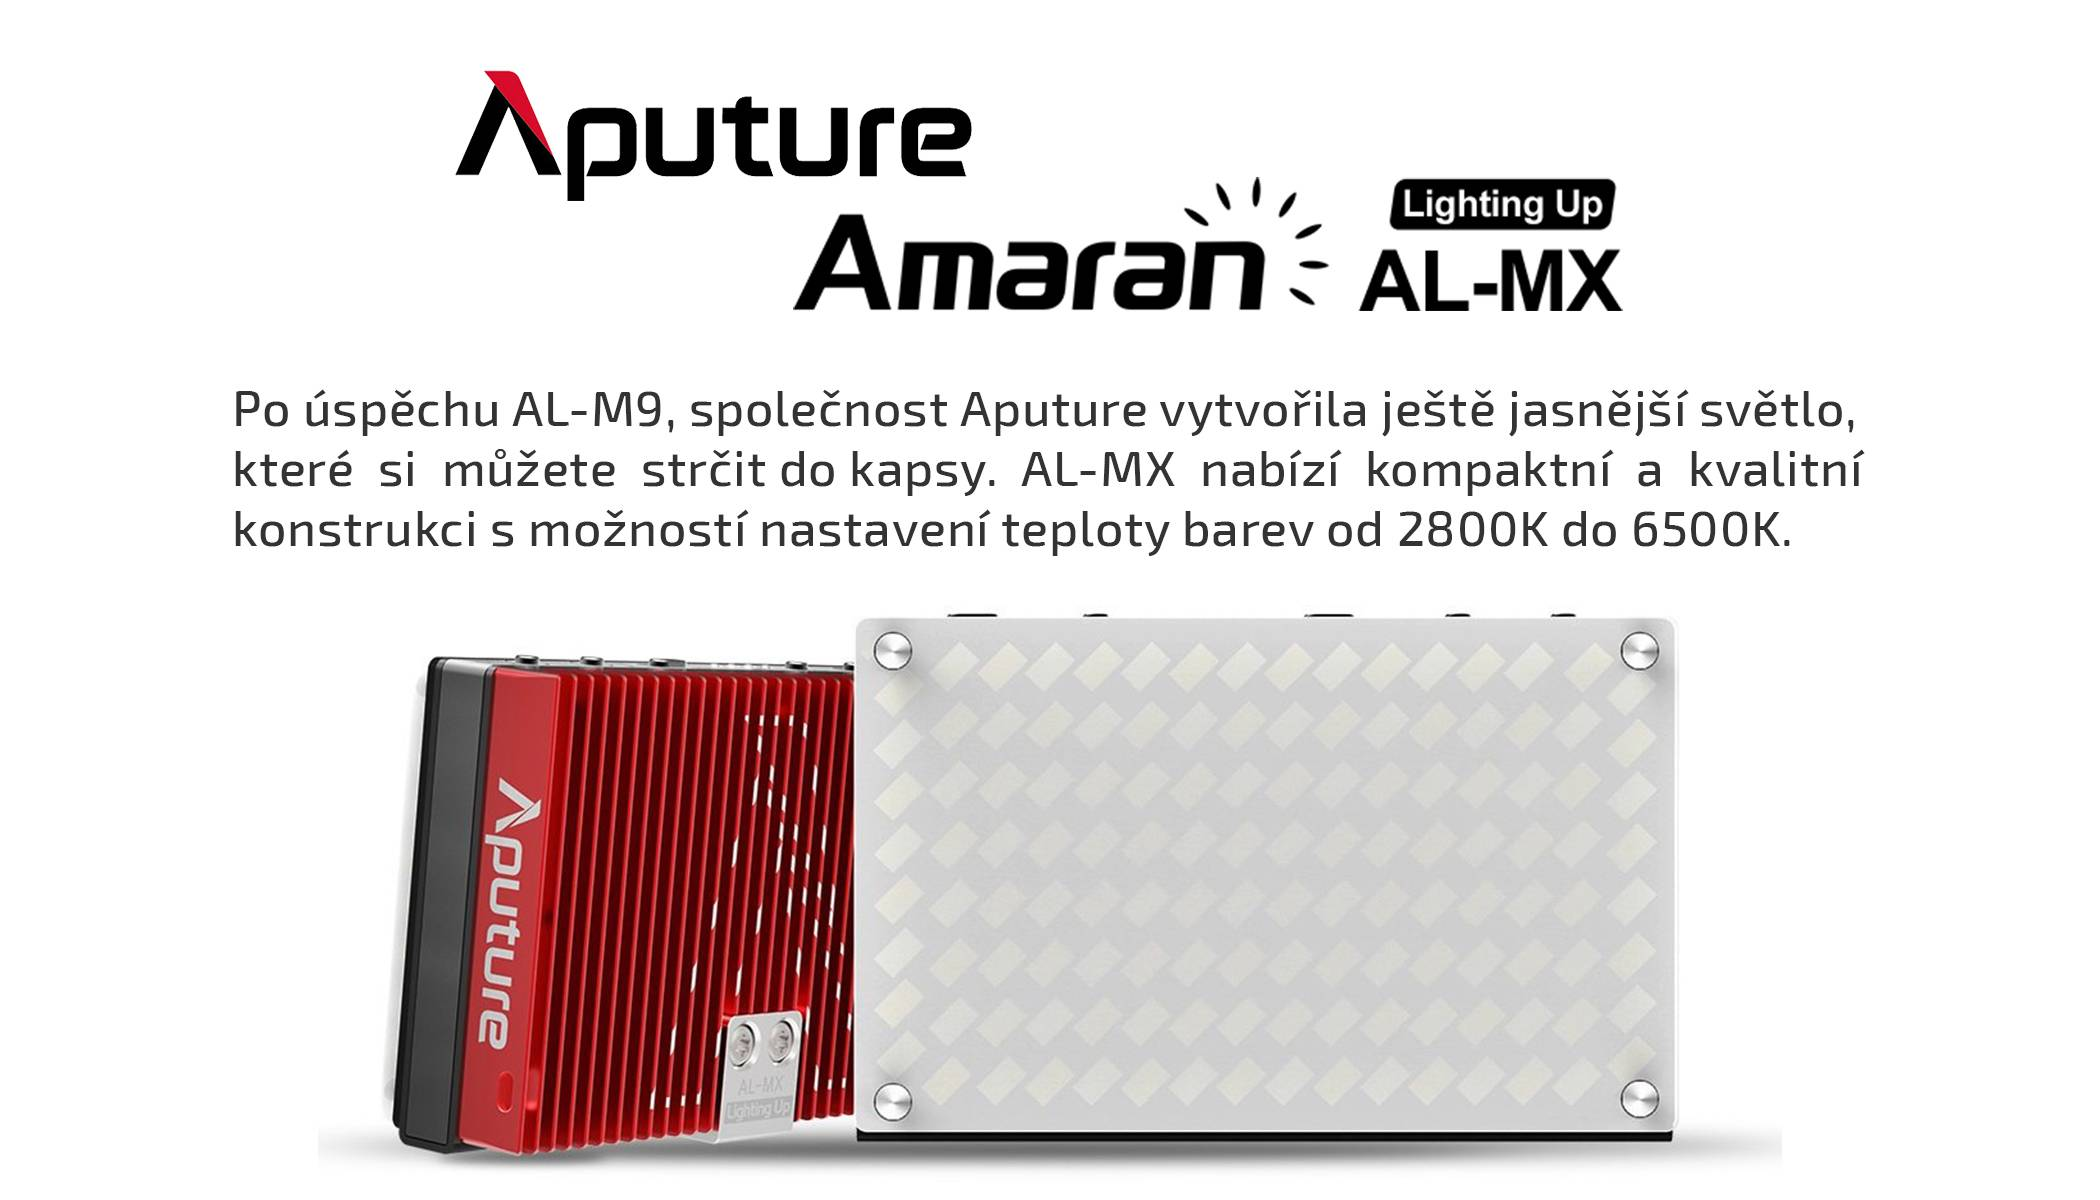 film-technika-aputure-al-mx-2800k-6500k-led-světlo